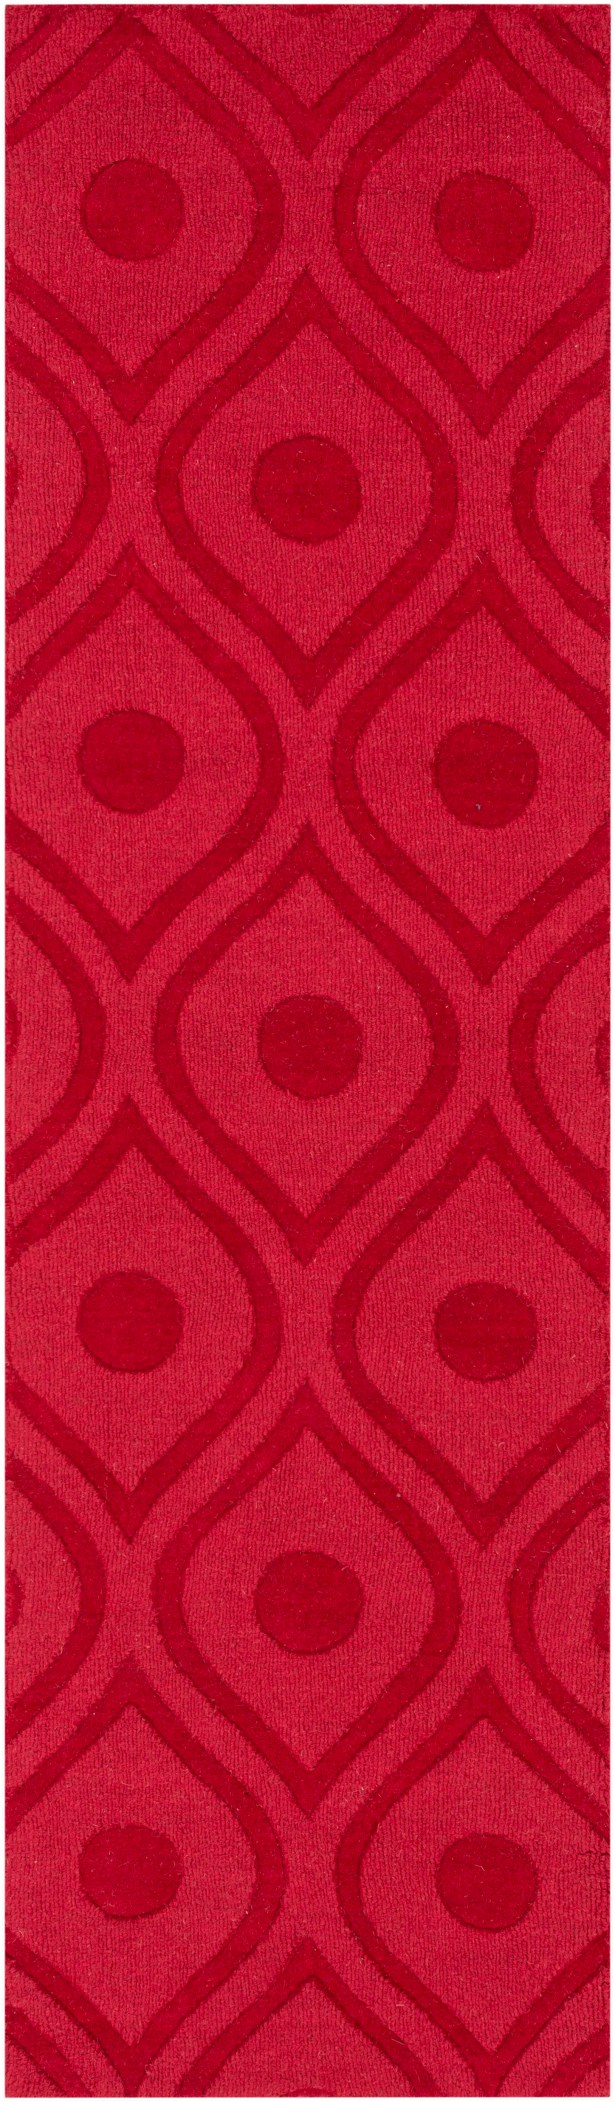 Castro Hand Woven Wool Red Area Rug Rug Size: Runner 2'3